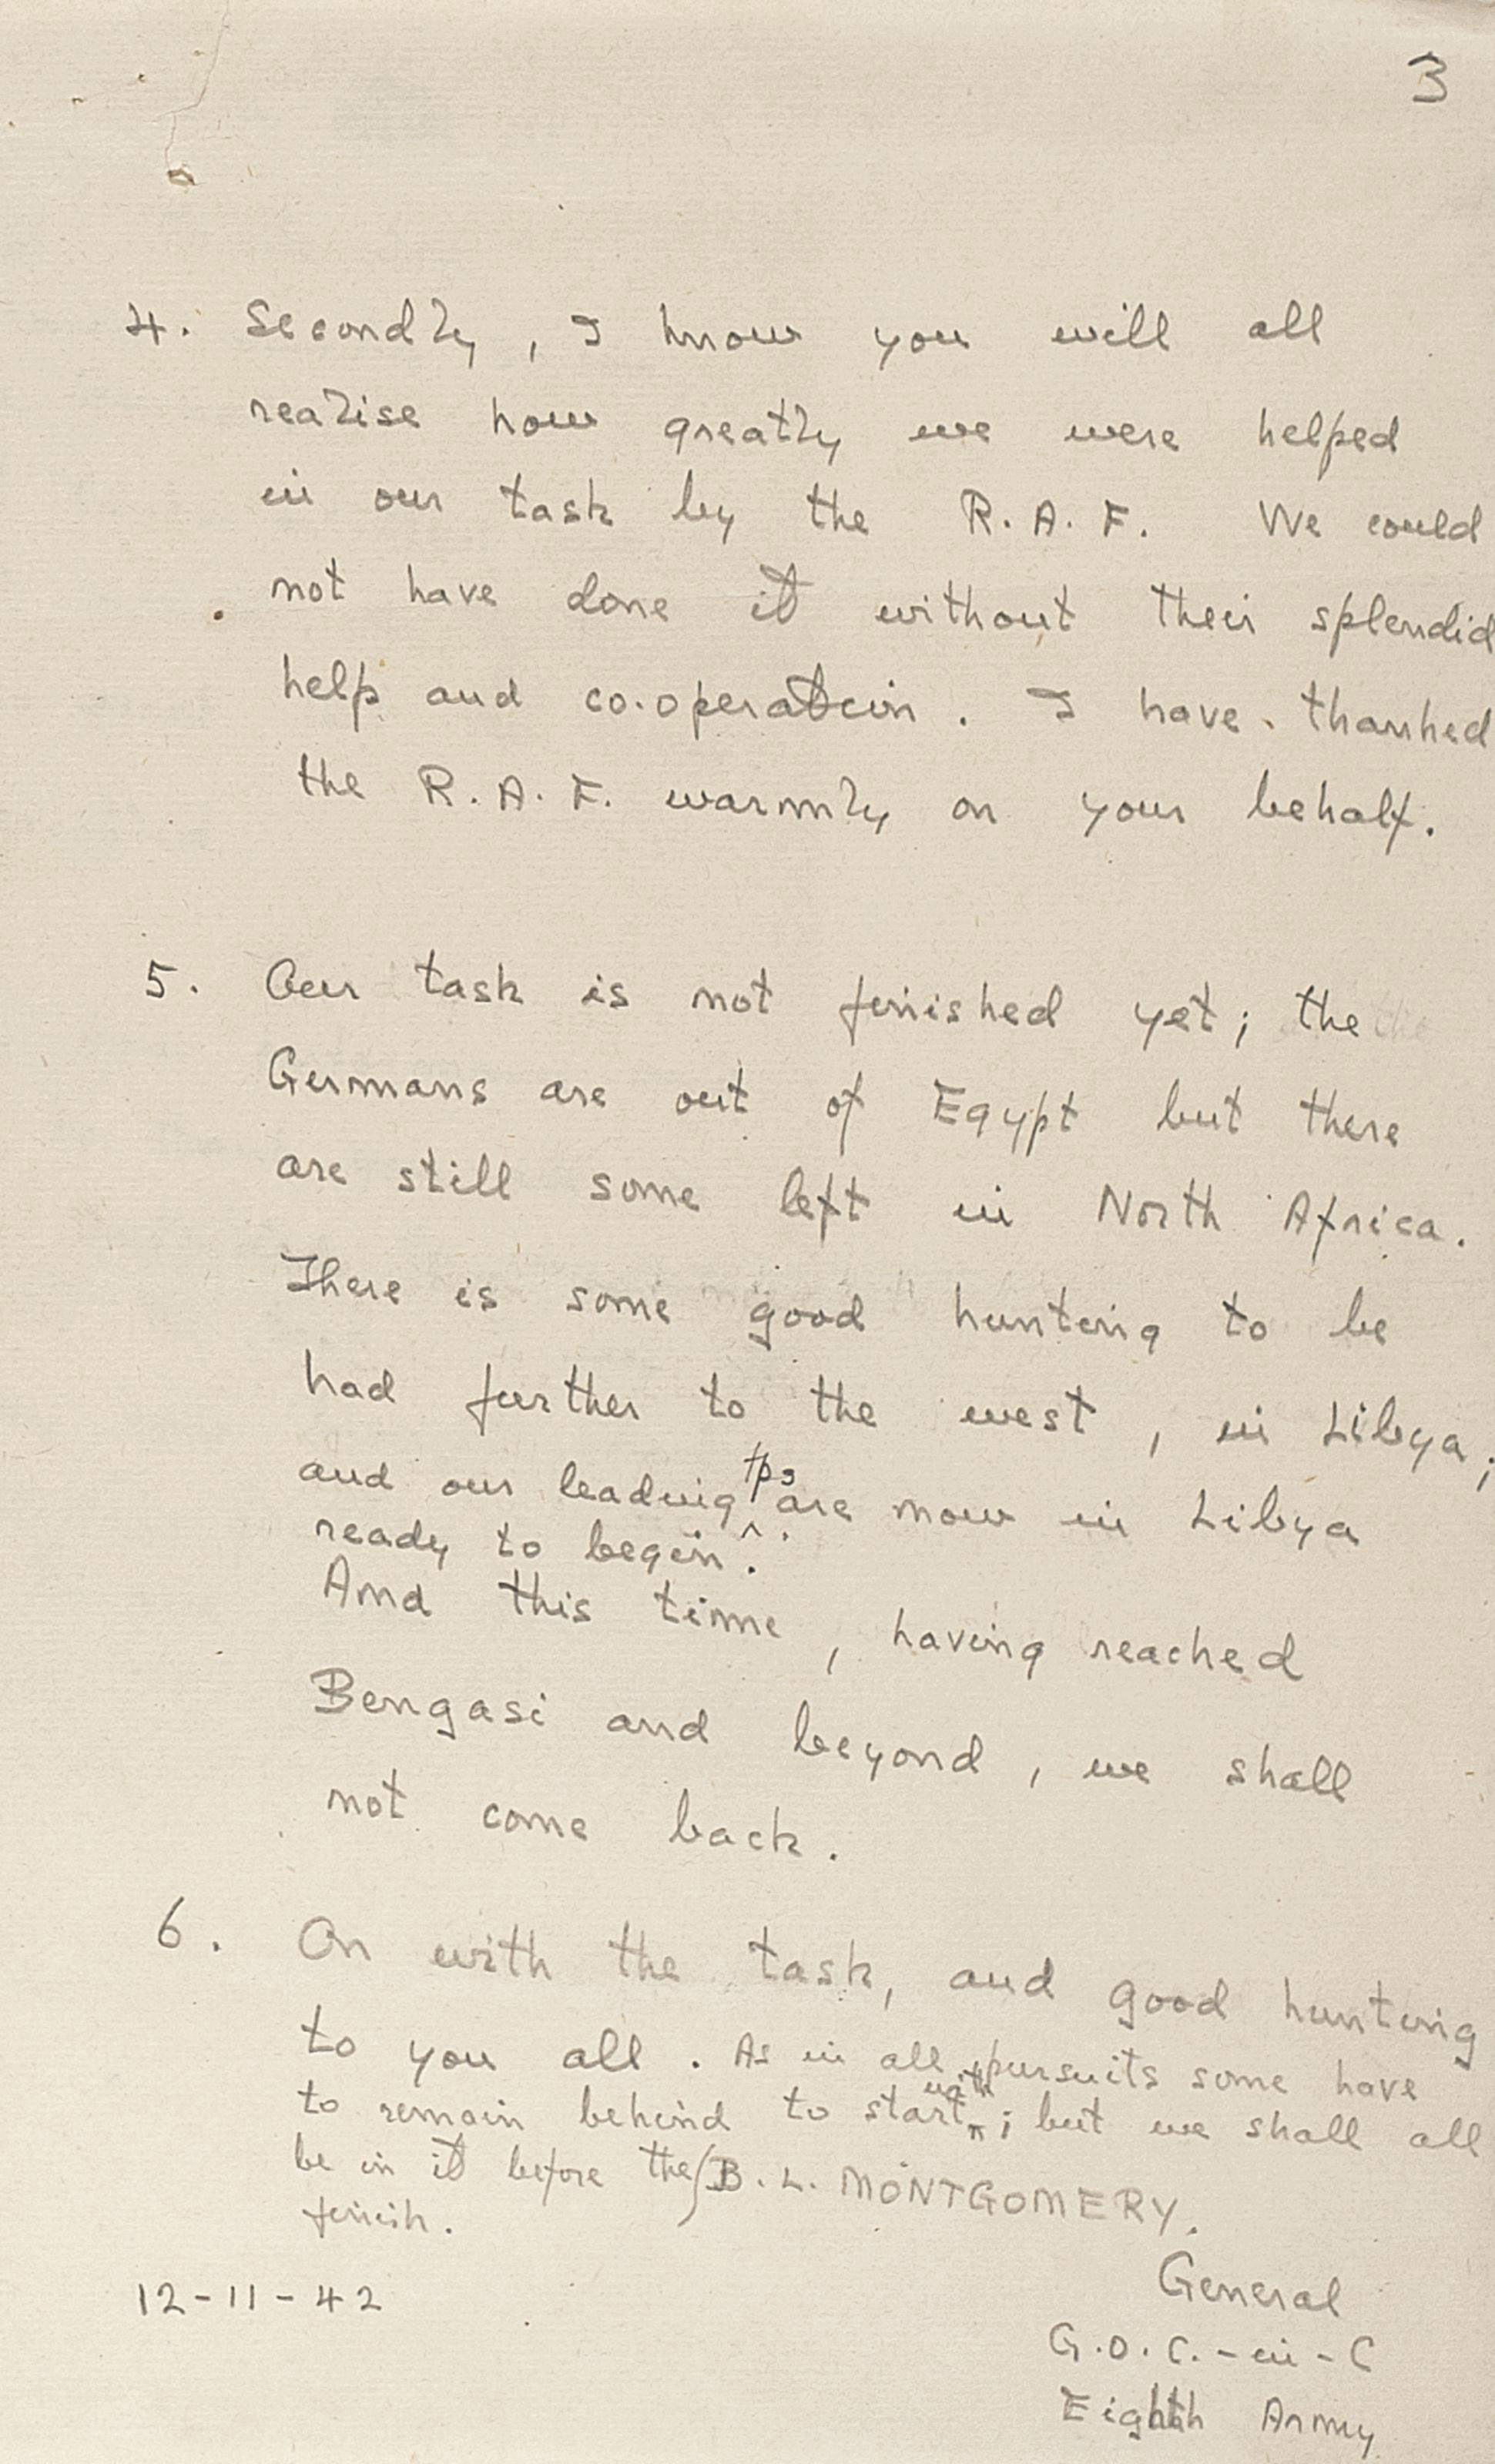 MONTGOMERY, Bernard Law, 1st Viscount Montgomery of Alamein (1887-1976). Autograph manuscript signed ('B.L. MONTGOMERY  General  G.O.C.-in-C.  Eighth Army'), 'EIGHTH ARMY  Personal Message from the Army Commander to be read out to all troops', n.p., 12 November 1942, in pencil, three pages, folio, annotations in other hands at head 'Army Comdr wishes to see a proof when ready' and 'To be presented & issued as Army Comdr's special message before LIGHTFOOT' (staple holes and tears at upper left corner). Provenance: Sotheby's sale, 17 July 1997, lot 458; private collection.